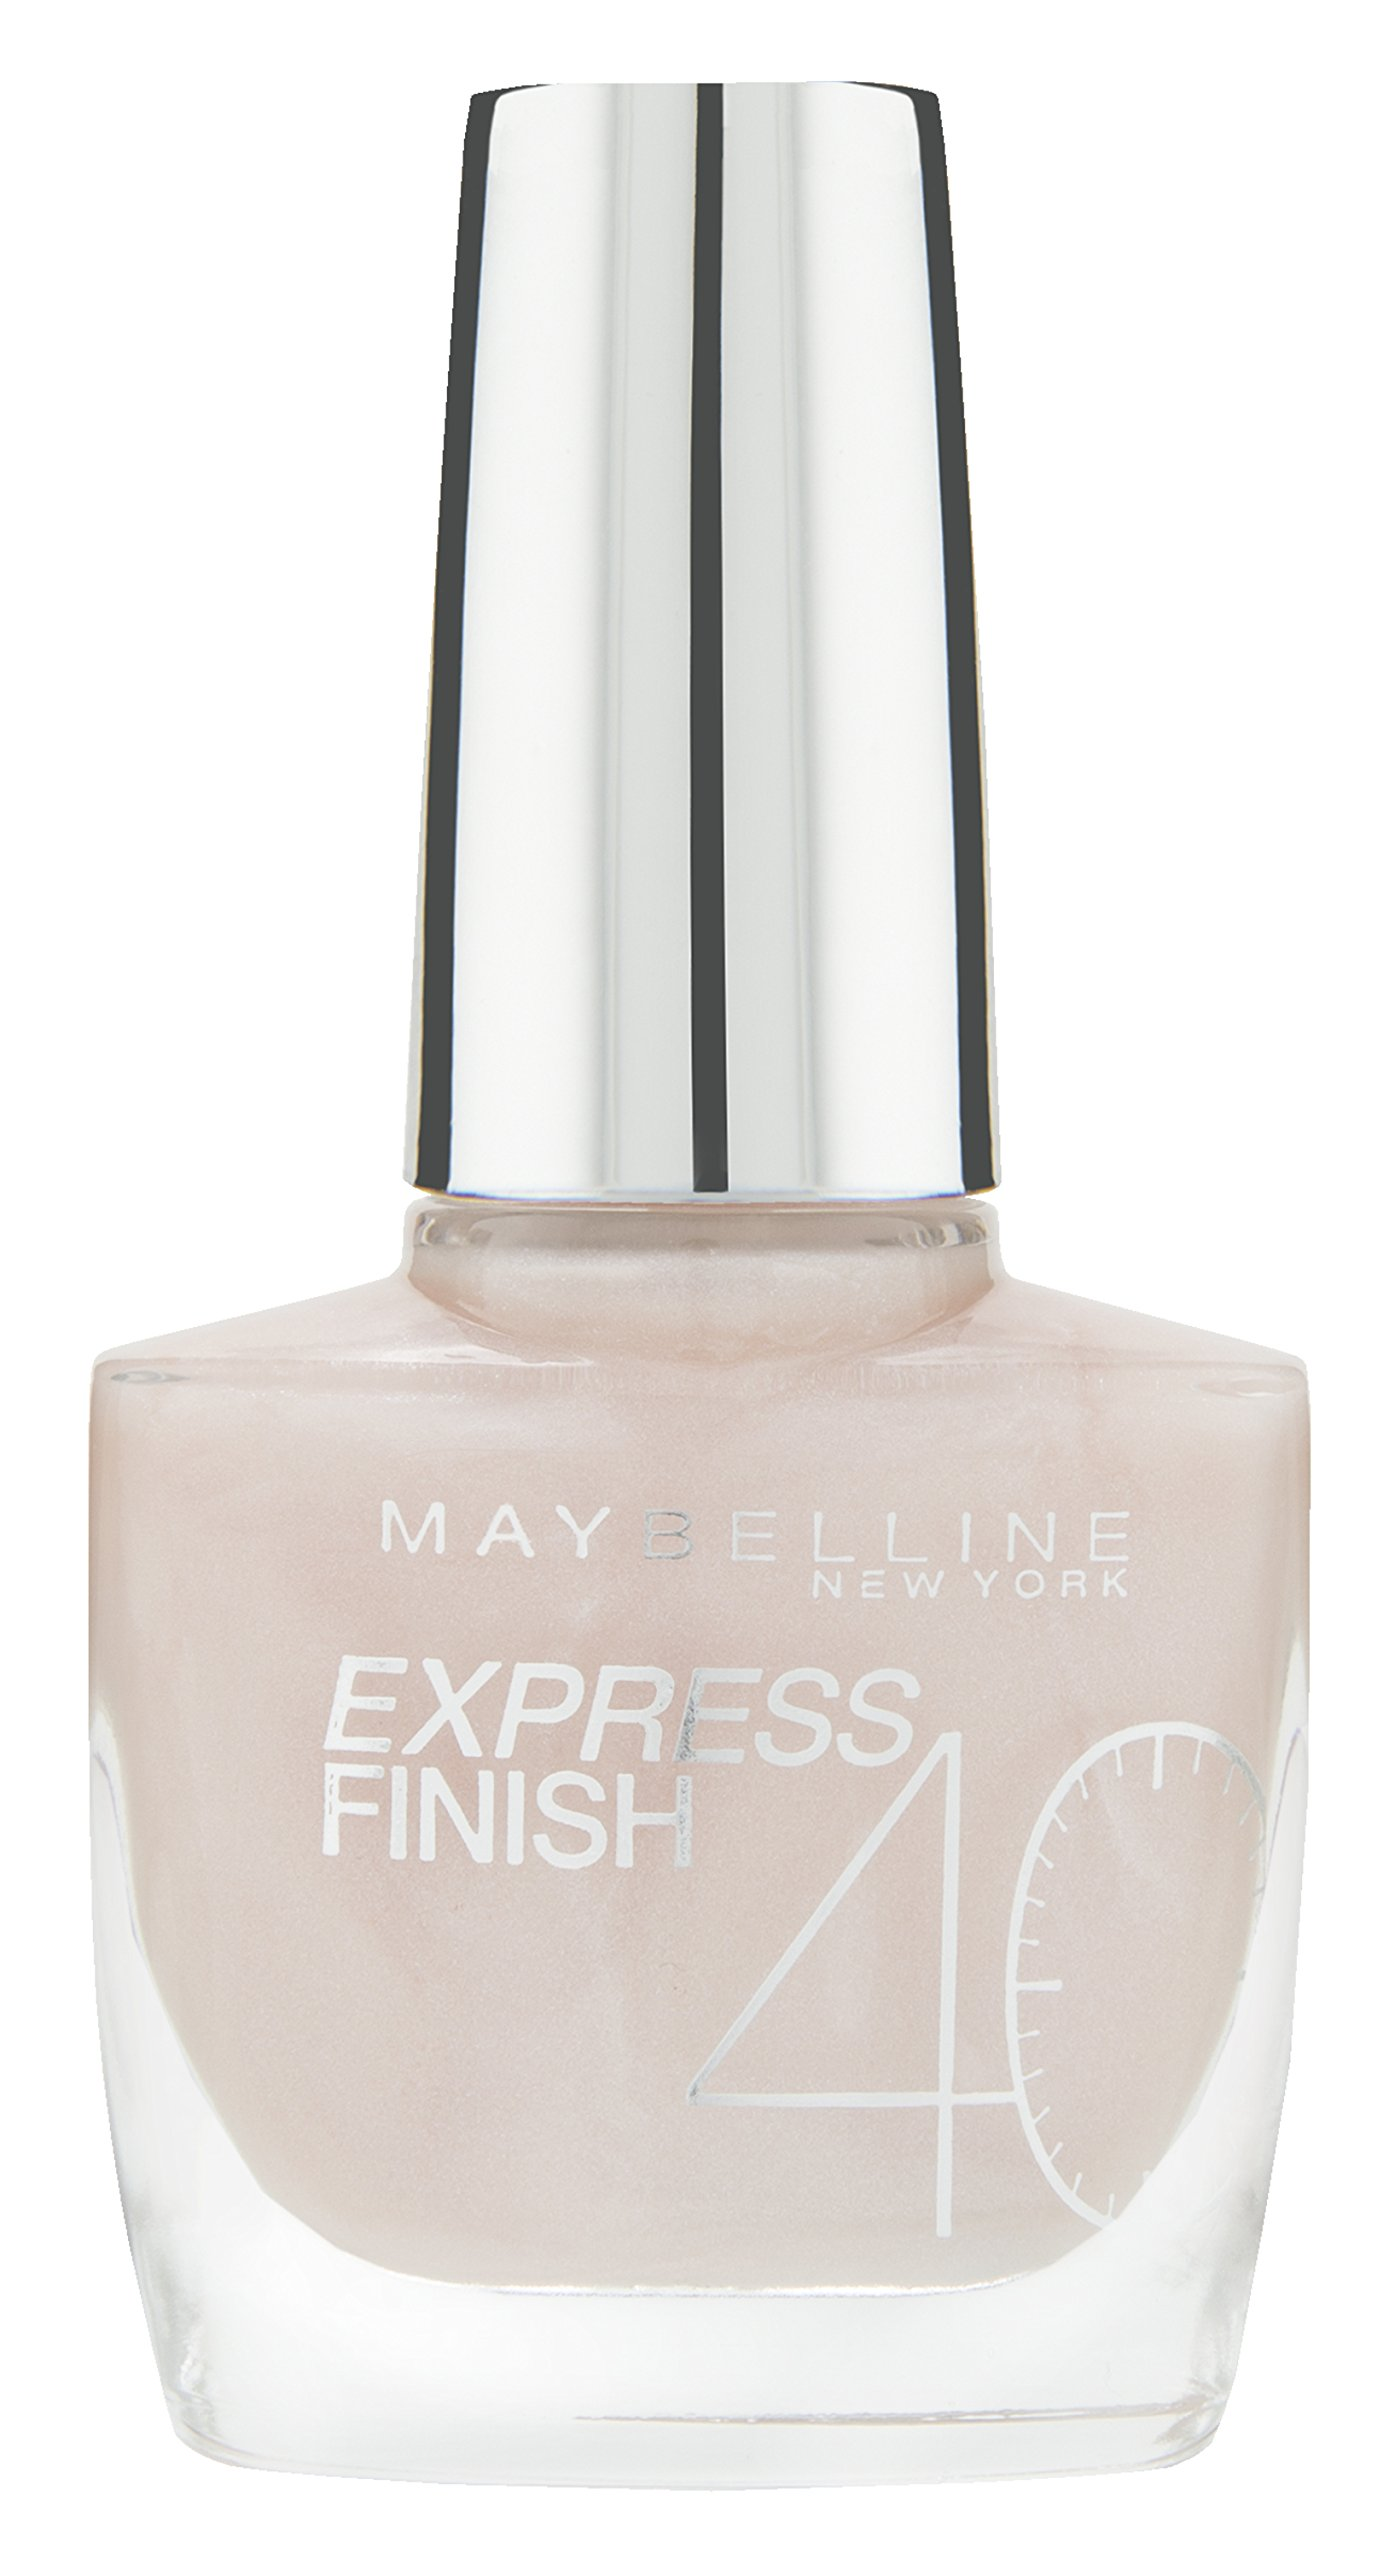 Maybelline Express Finish Esmalte de Uñas 19 / 120P Sweet Rose